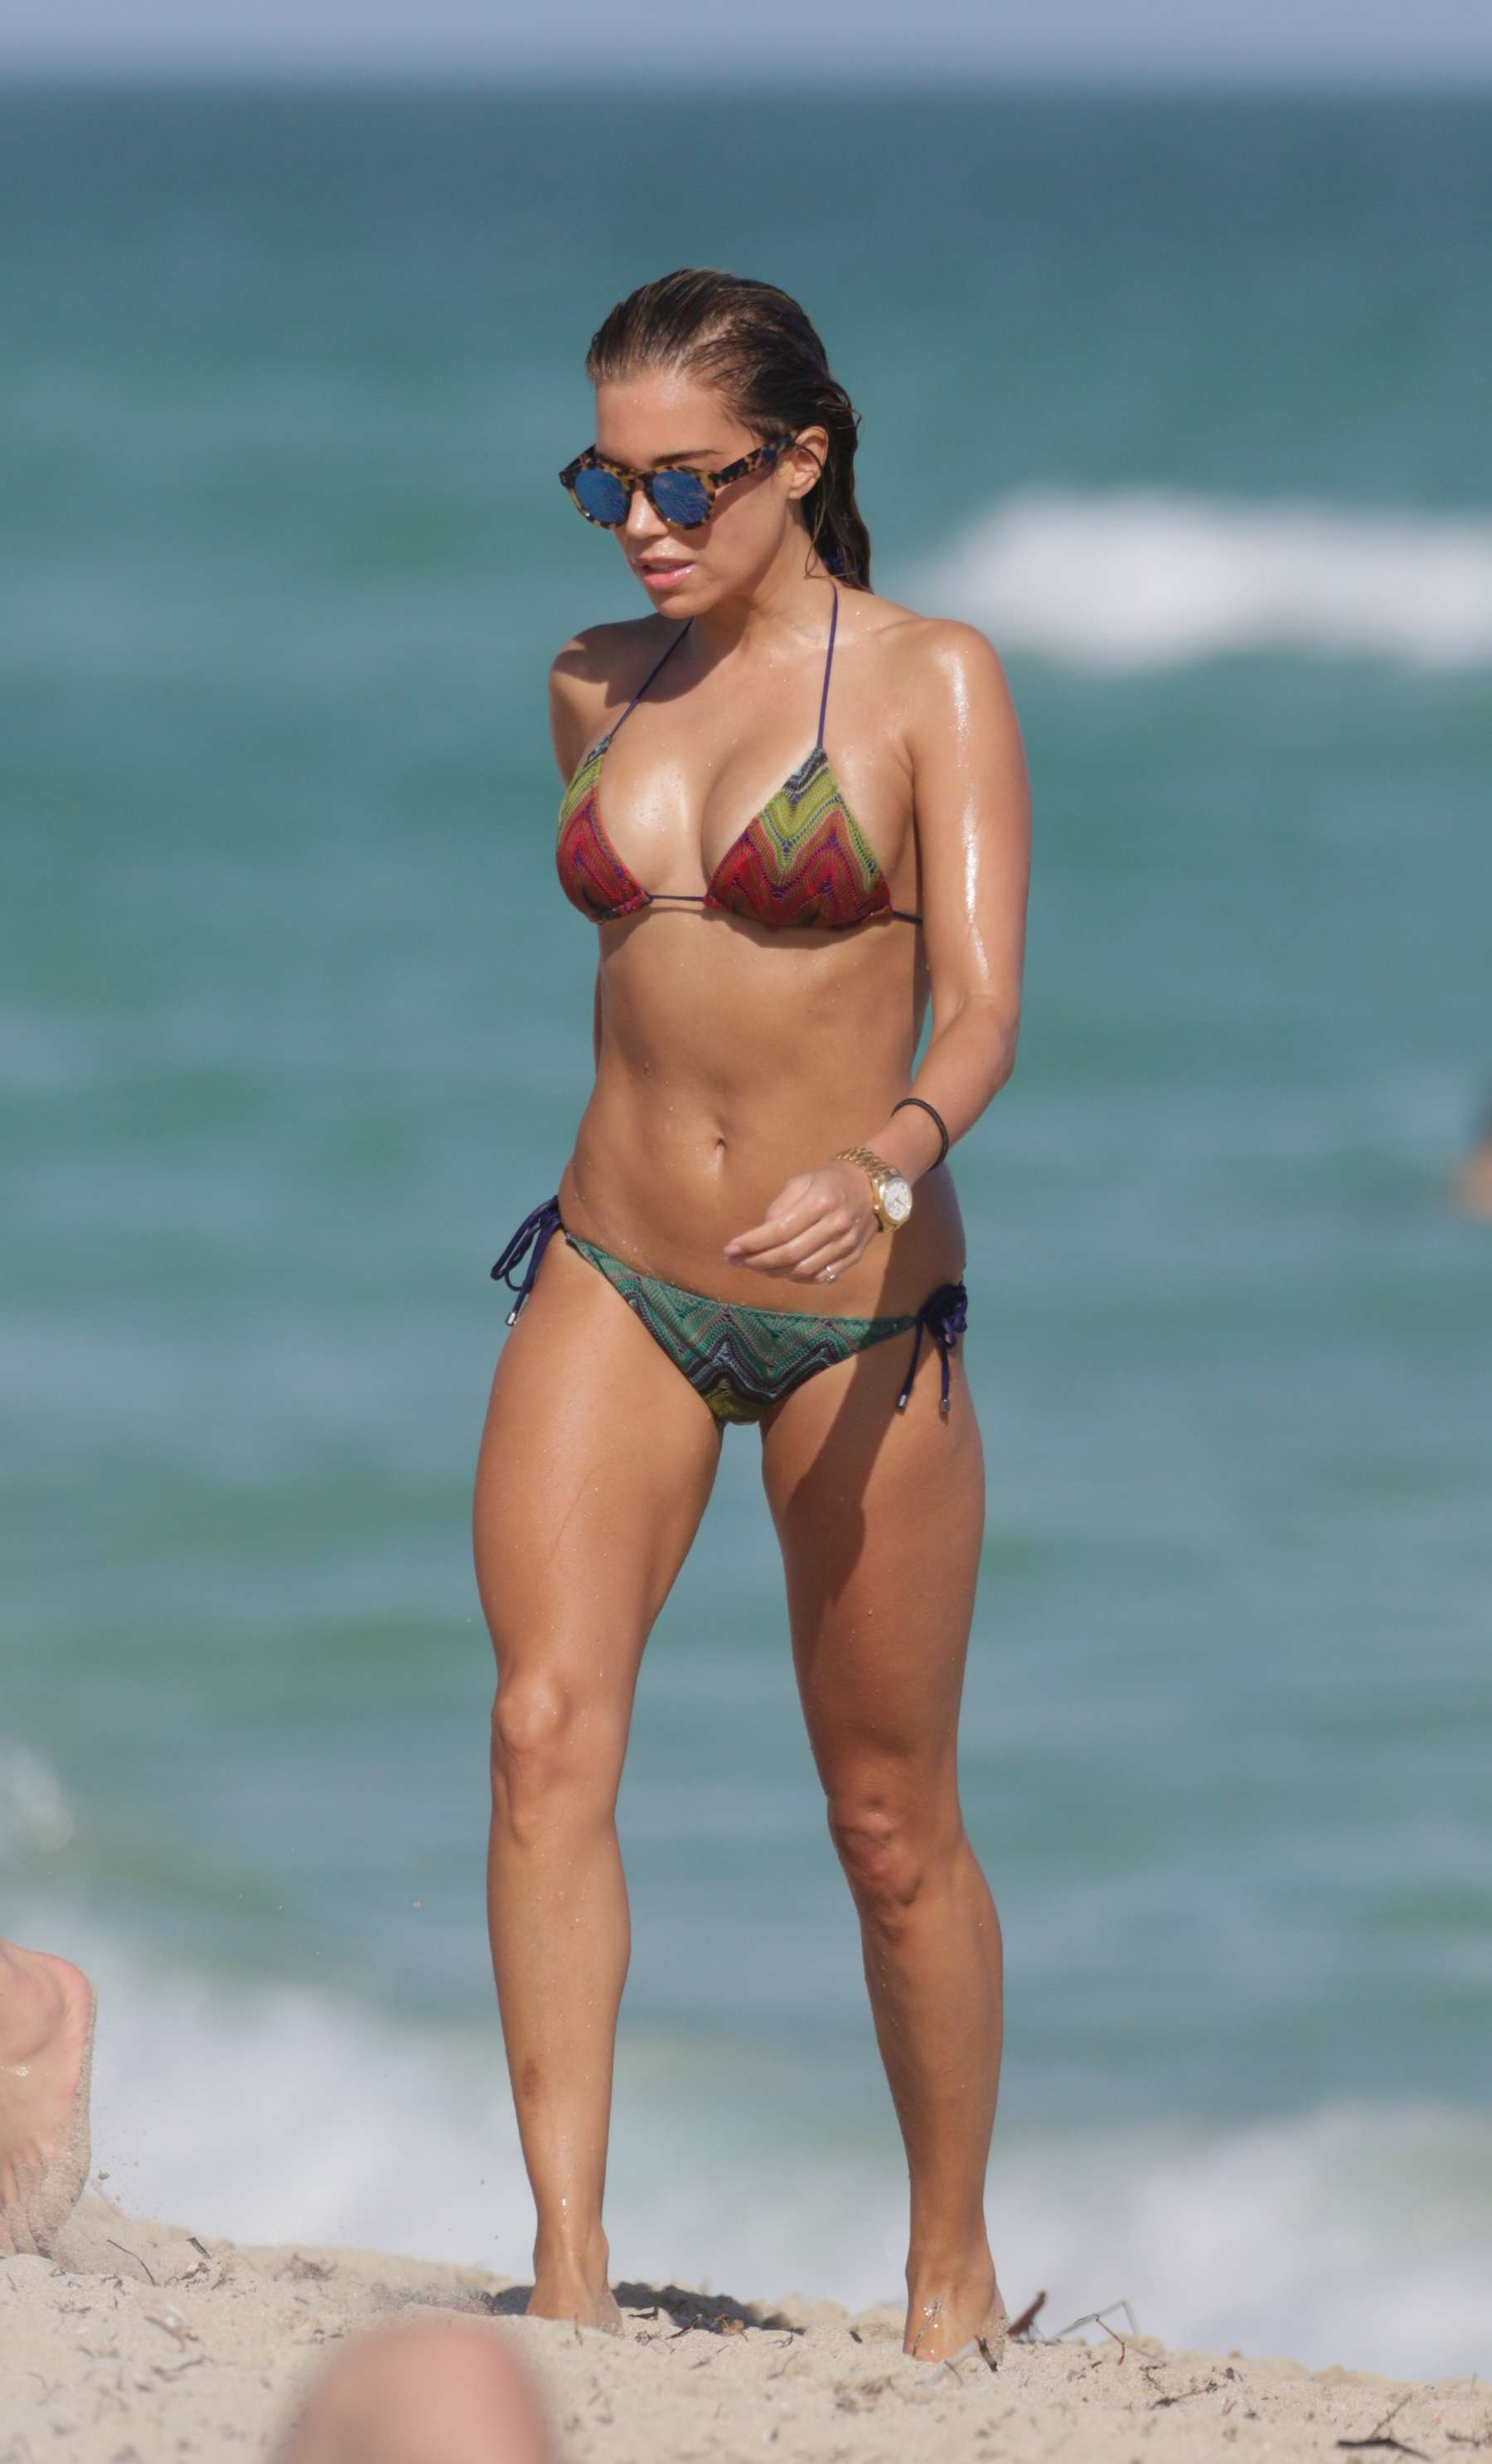 Sylvie Meis in Black Bikini on the beach in Miami Pic 32 of 35